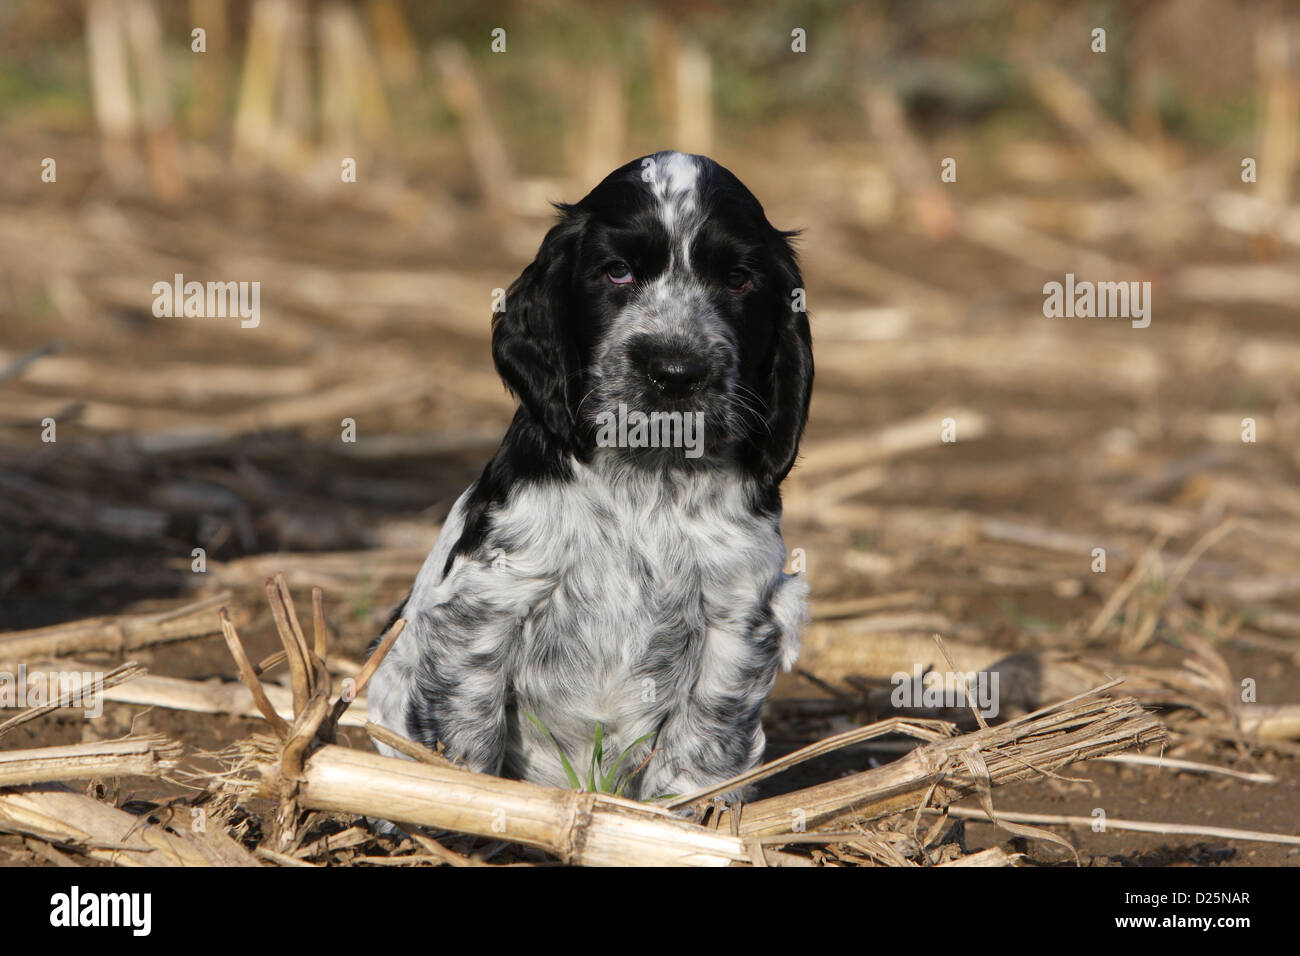 Dog English Cocker Spaniel puppy (blue roan) sitting in a